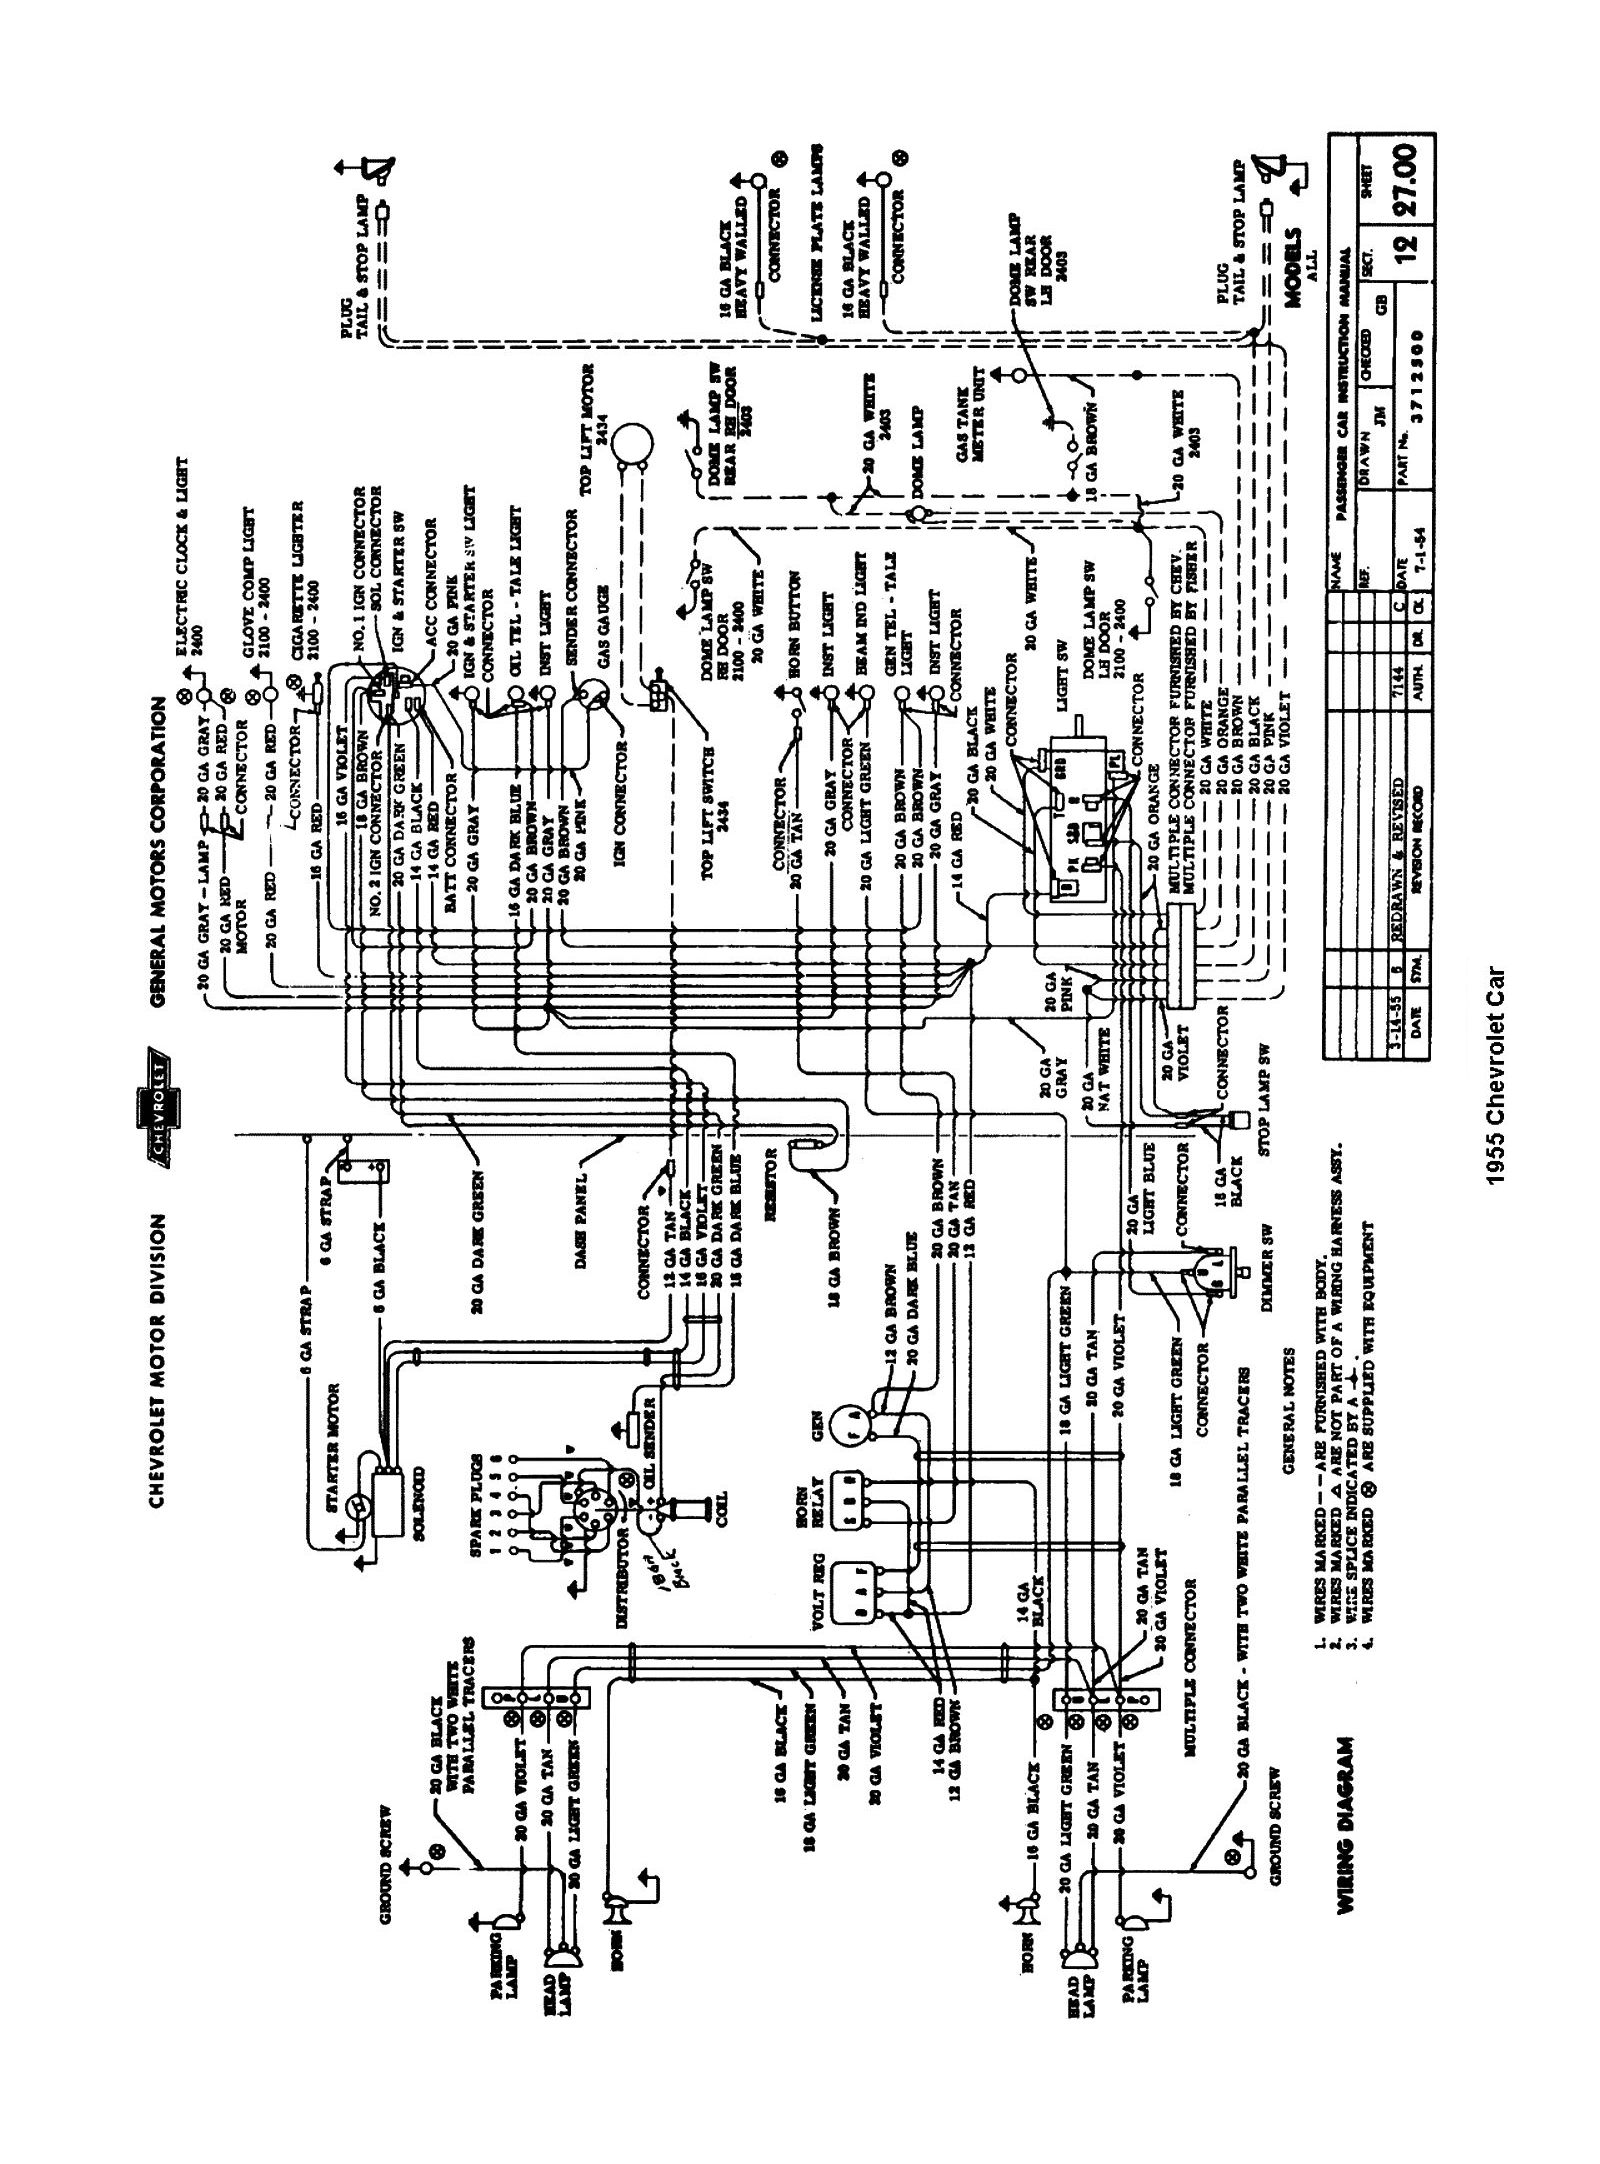 electrical wiring diagram 1954 dodge diy enthusiasts wiring diagrams \u2022 2009 Dodge Charger Wiring Diagram at 1954 Dodge Wiring Diagram